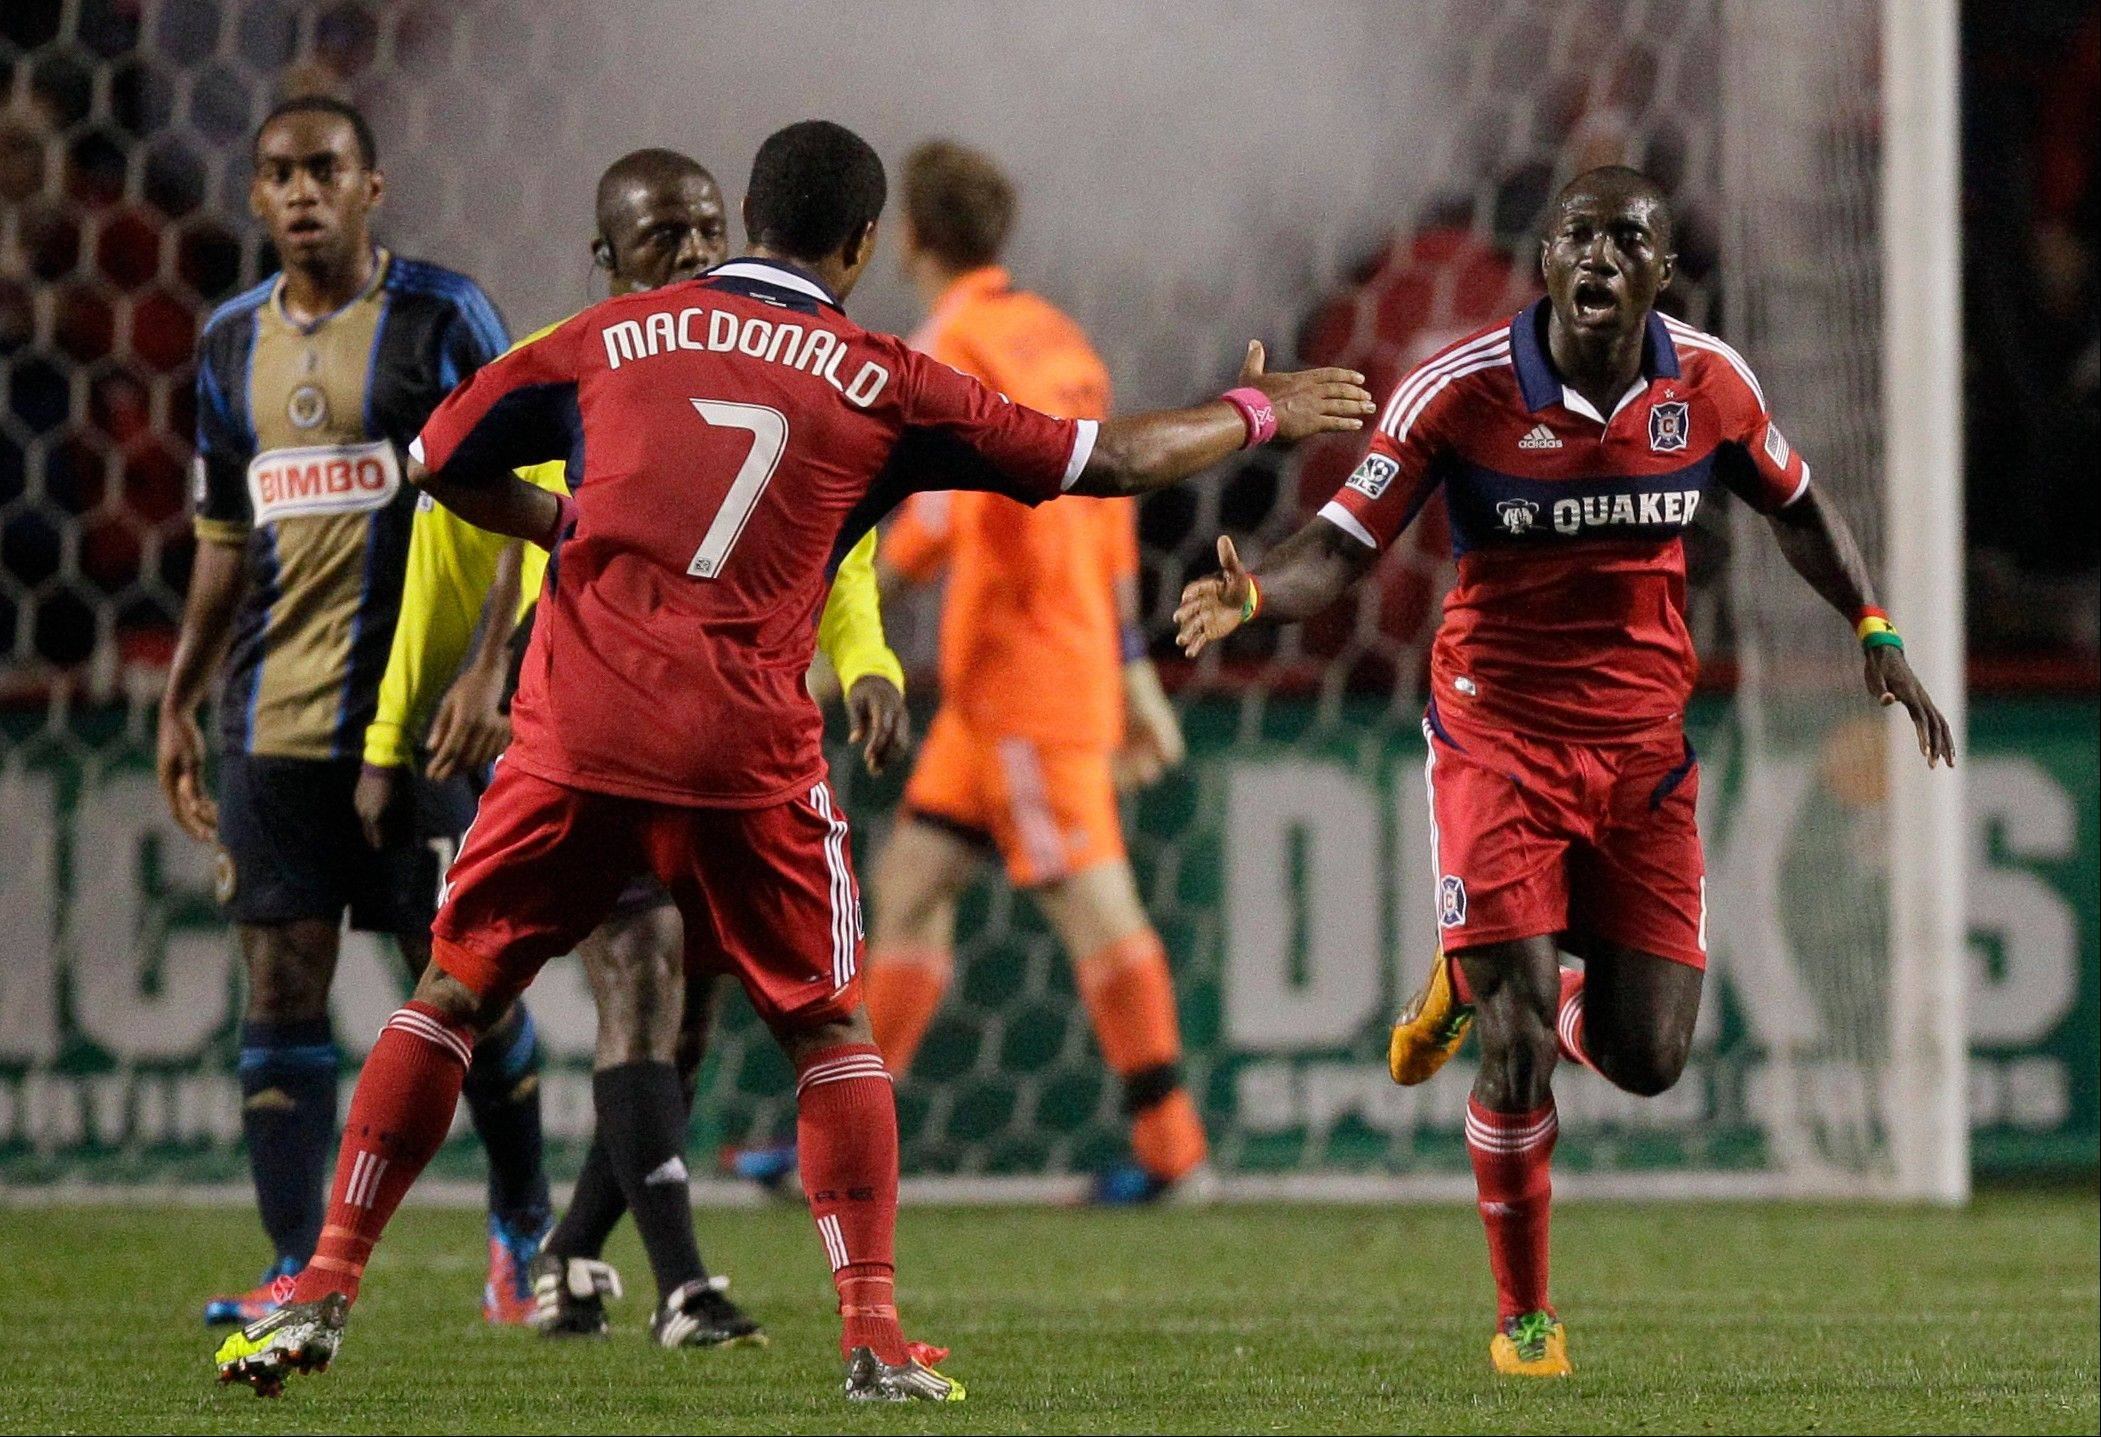 Chicago Fire forward Dominic Oduro, right, celebrates with forward Sherjill McDonald (7) after scoring a goal during the second half of an MLS soccer game against the Chicago Fire, Wednesday, Oct. 3, 2012, in Bridgeview, Ill. The Union won 3-1.